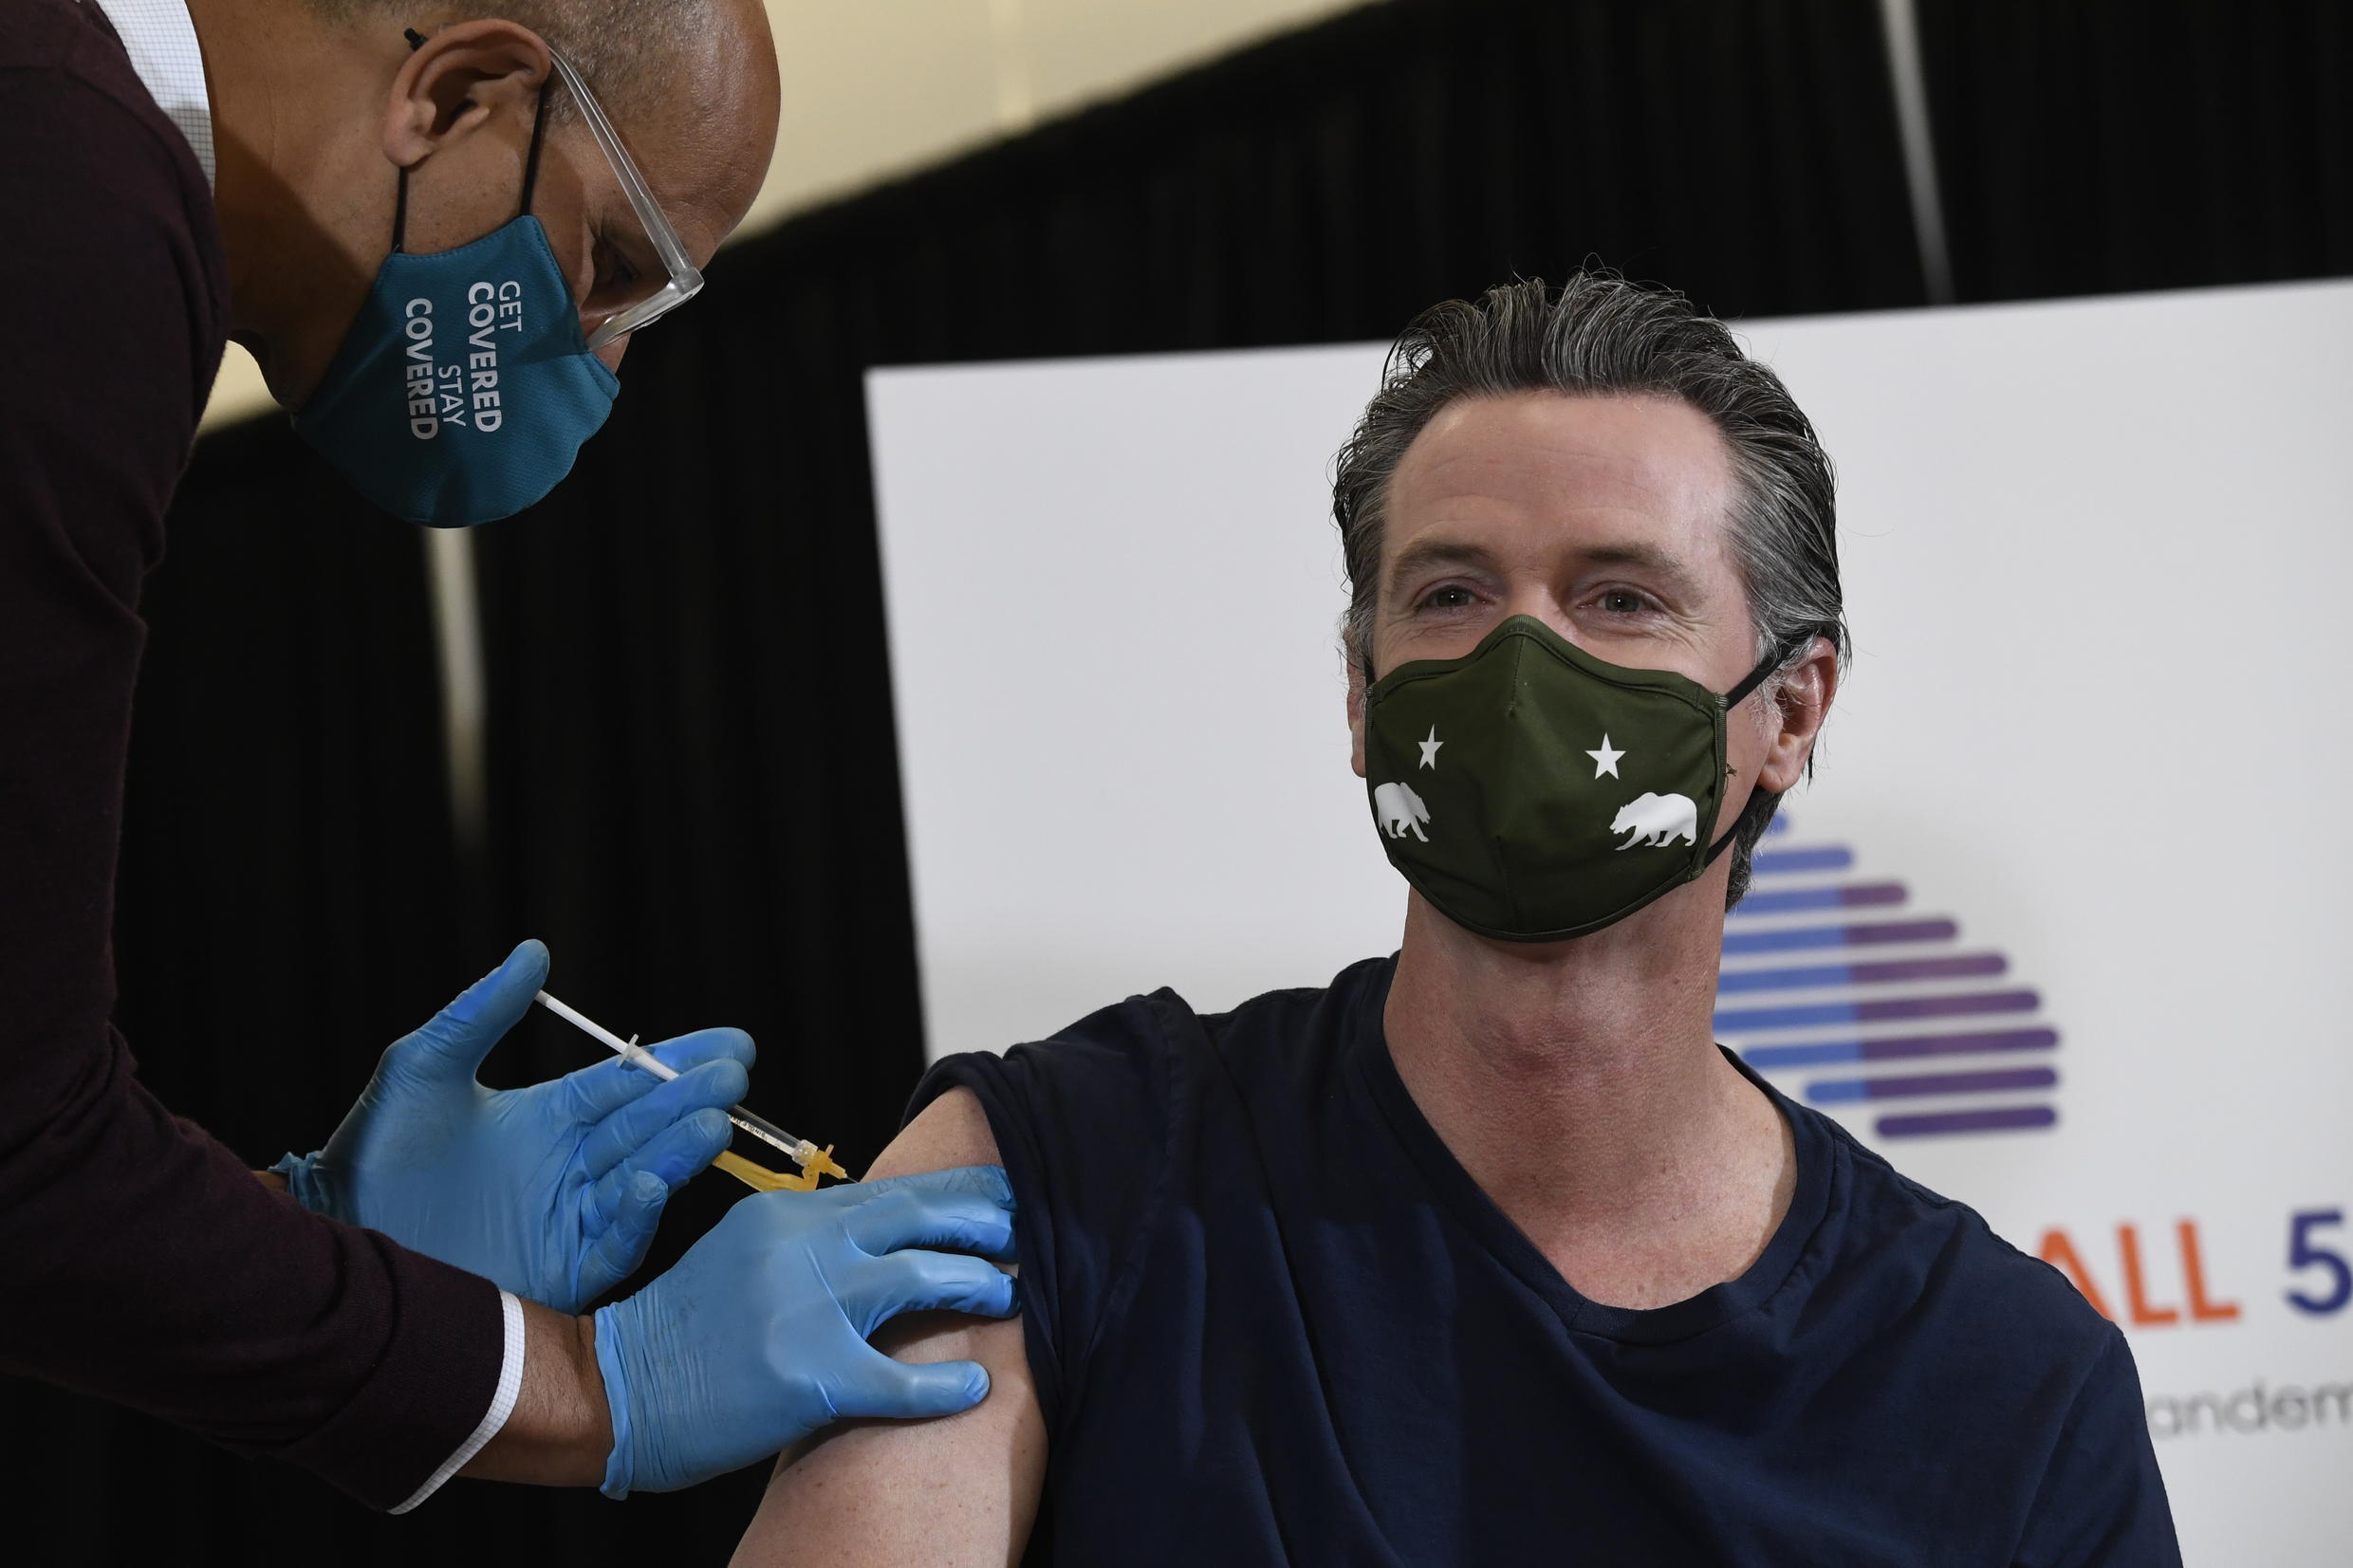 Image d'archive RFI : California Governor Gavin Newsom says the state will reopen fully if vaccinations keep up their current pace